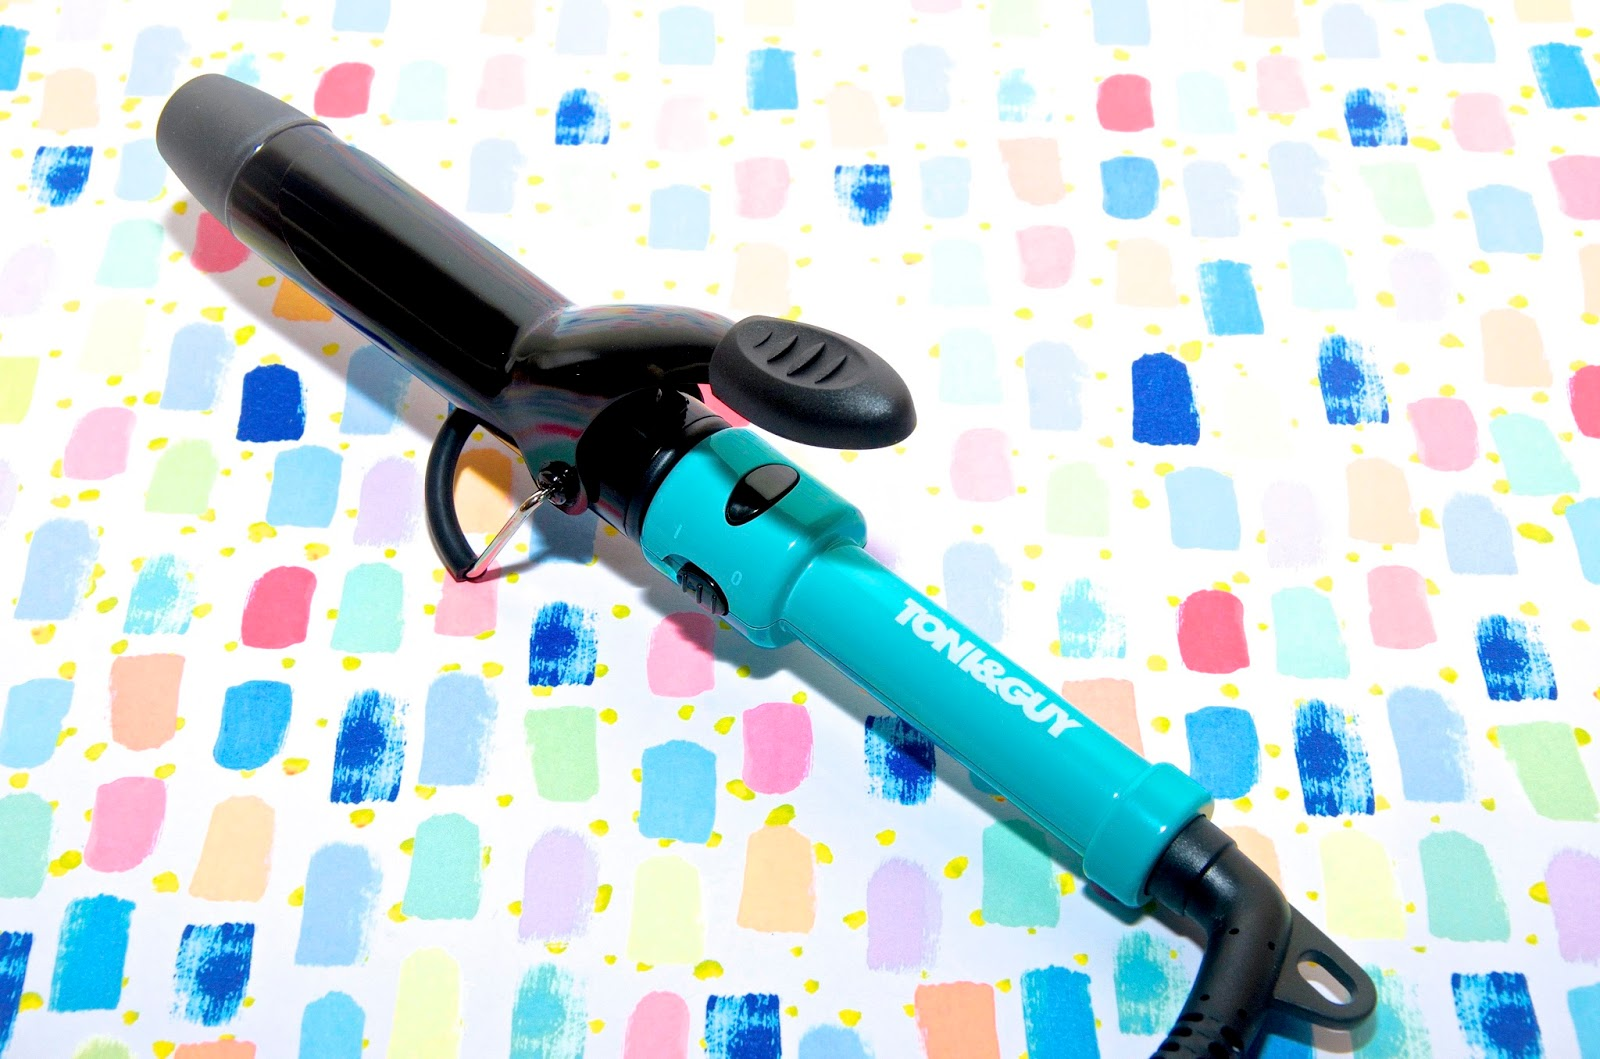 turquoise travel curling iron tongs